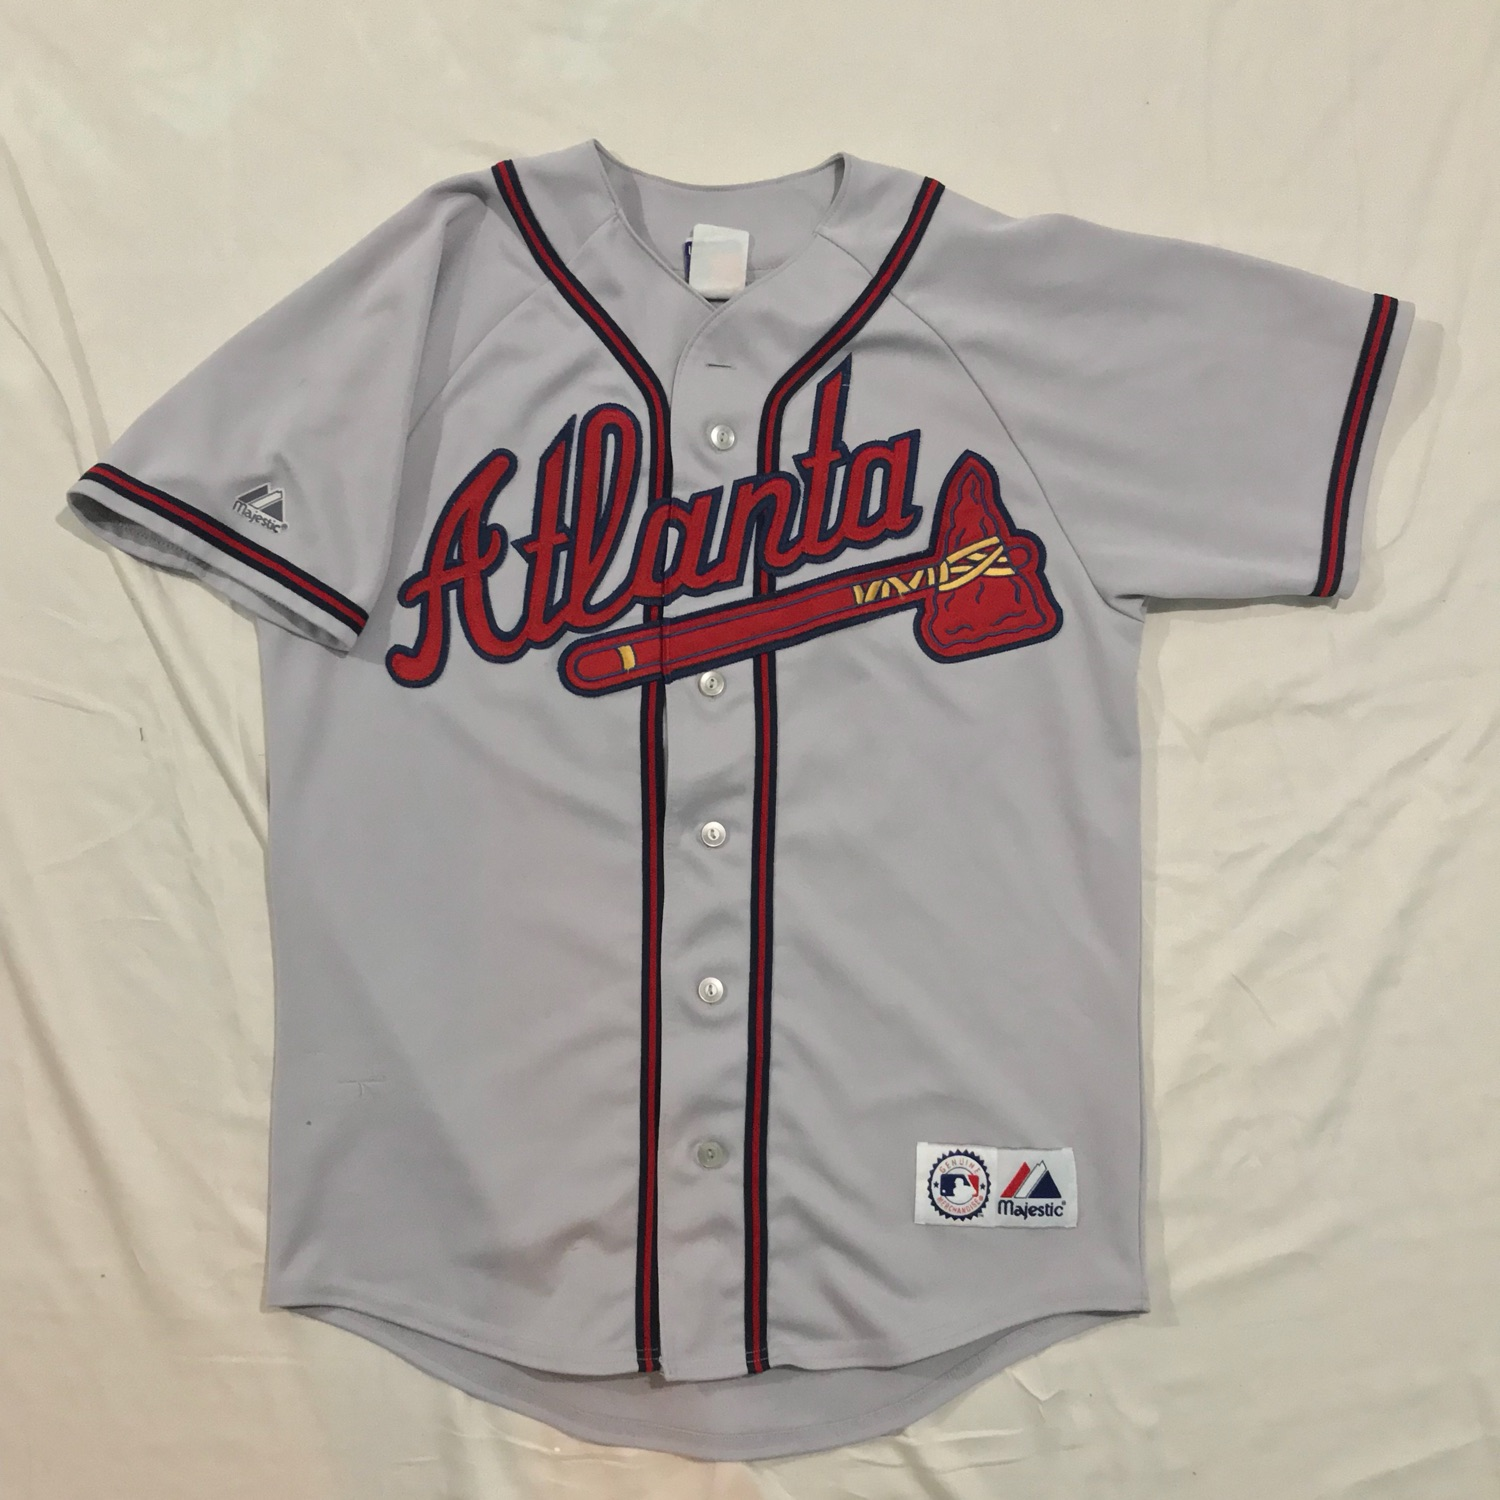 detailed look 95a83 590c0 Majestic Atlanta Braves Jackie Robinson Jersey